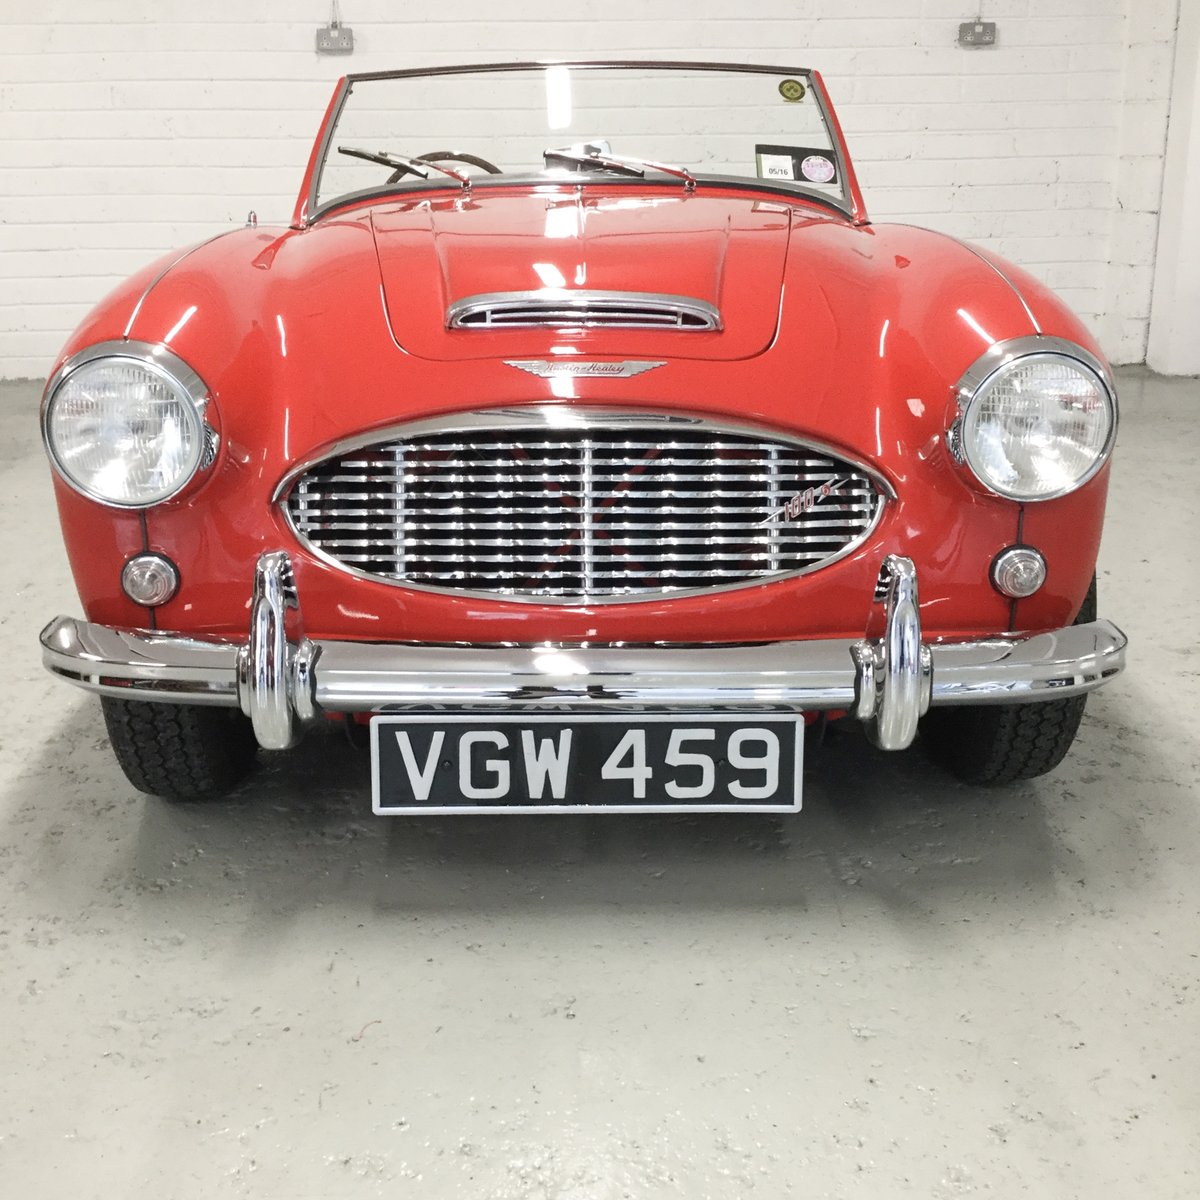 1958 Austin Healey 100-6 BN4 For Sale (picture 3 of 6)